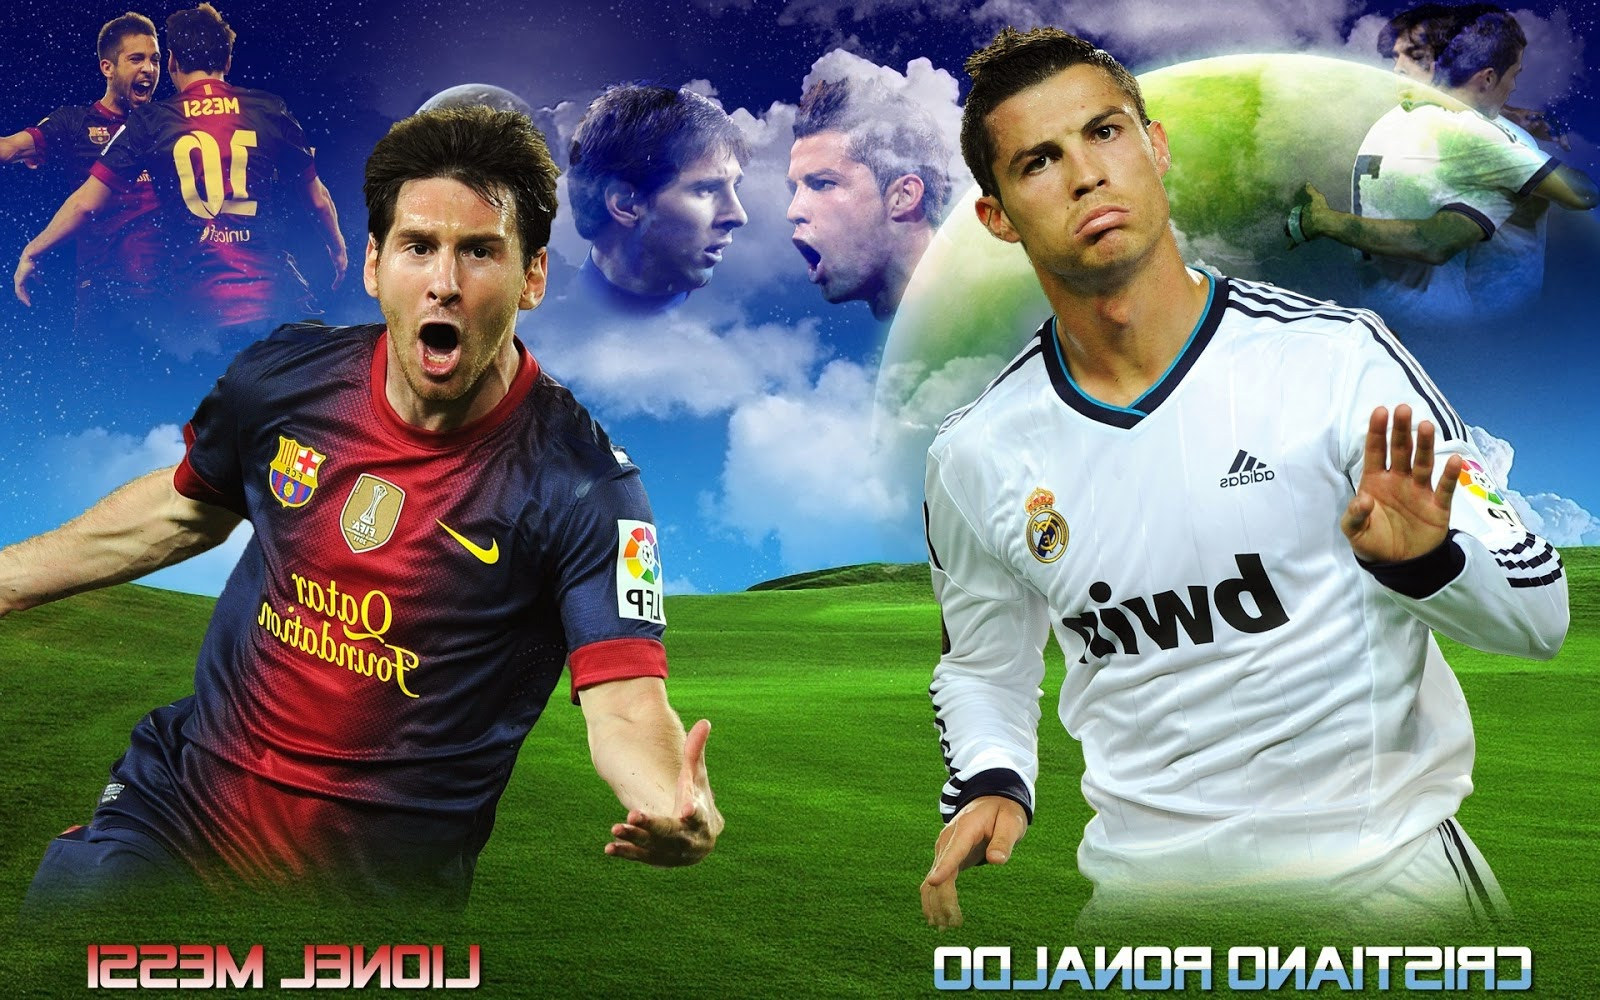 ronaldo vs messi Experts compare football stars cristiano ronaldo and lionel messi - their  upbringing, progression into the world of sports, skills talent, influence and.